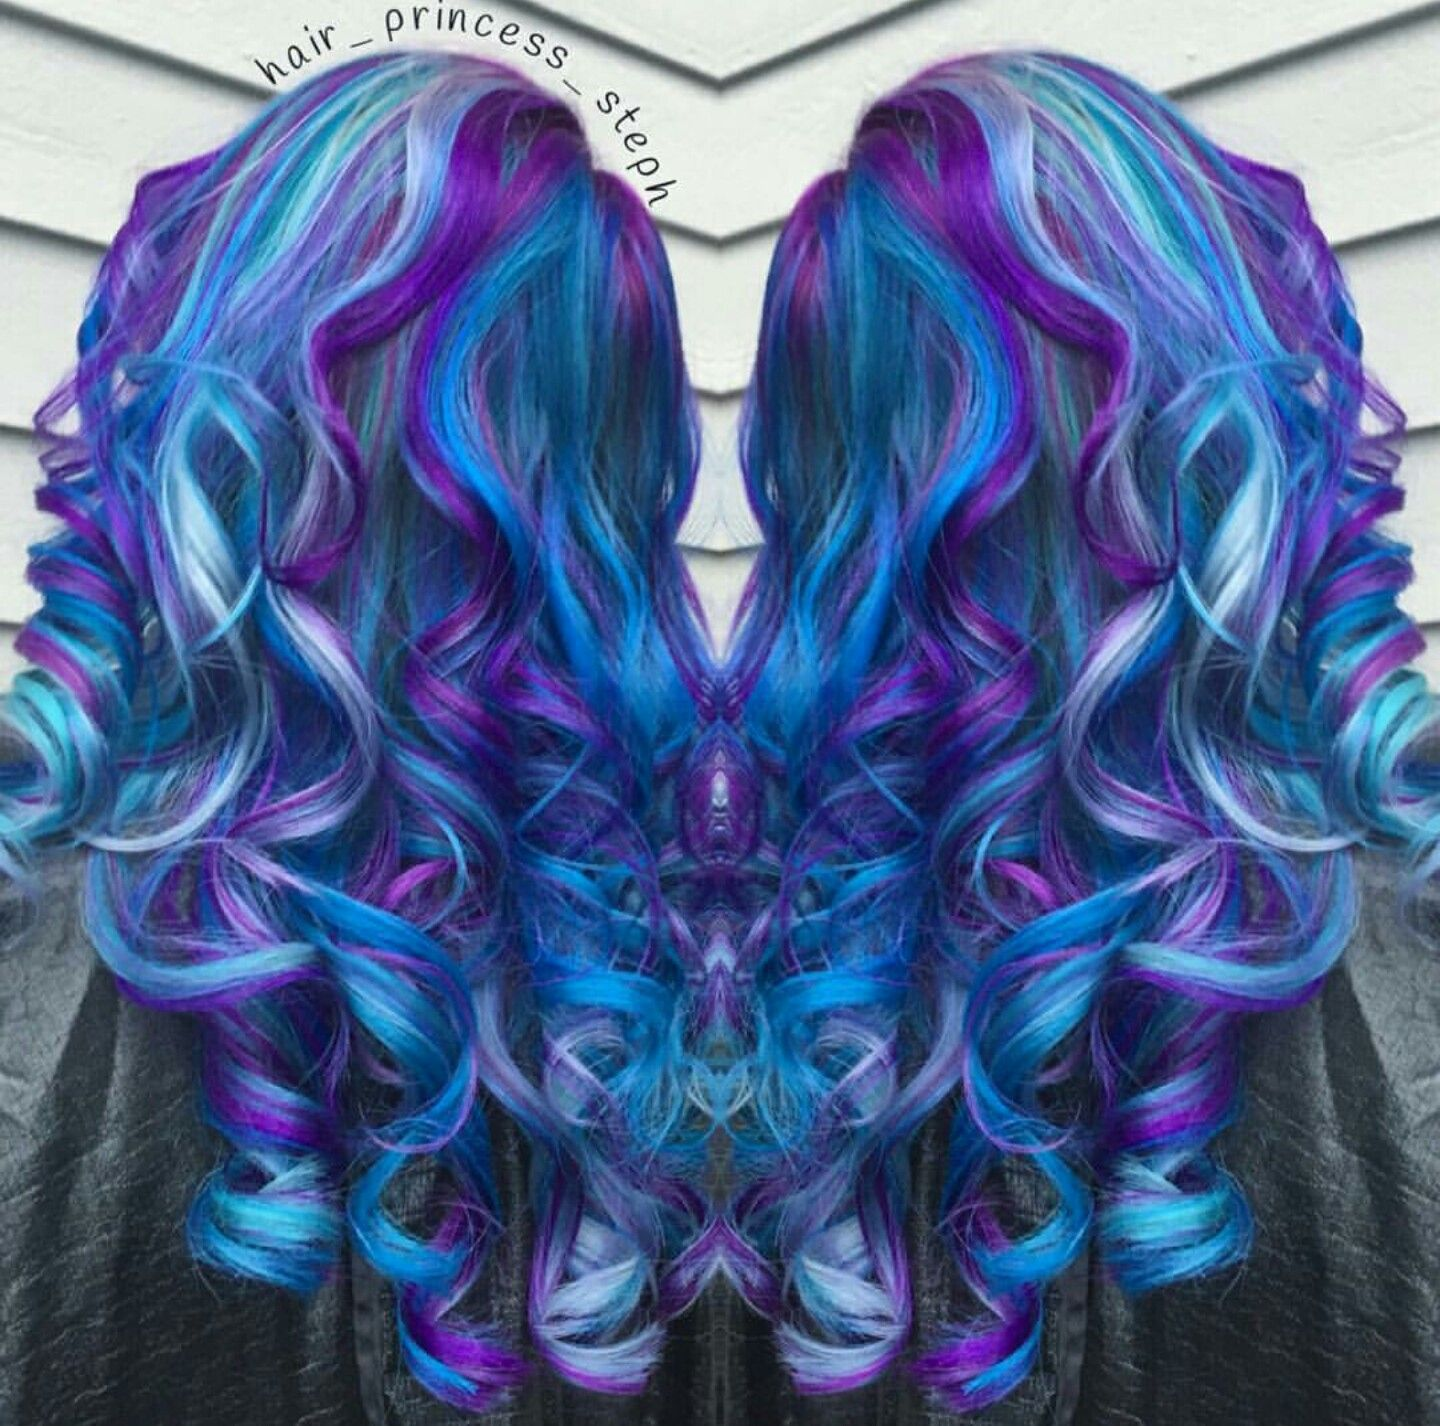 Vibrant Royal Blue And Purple Dyed Hair Mix Hair_princess_steph  Colorful H